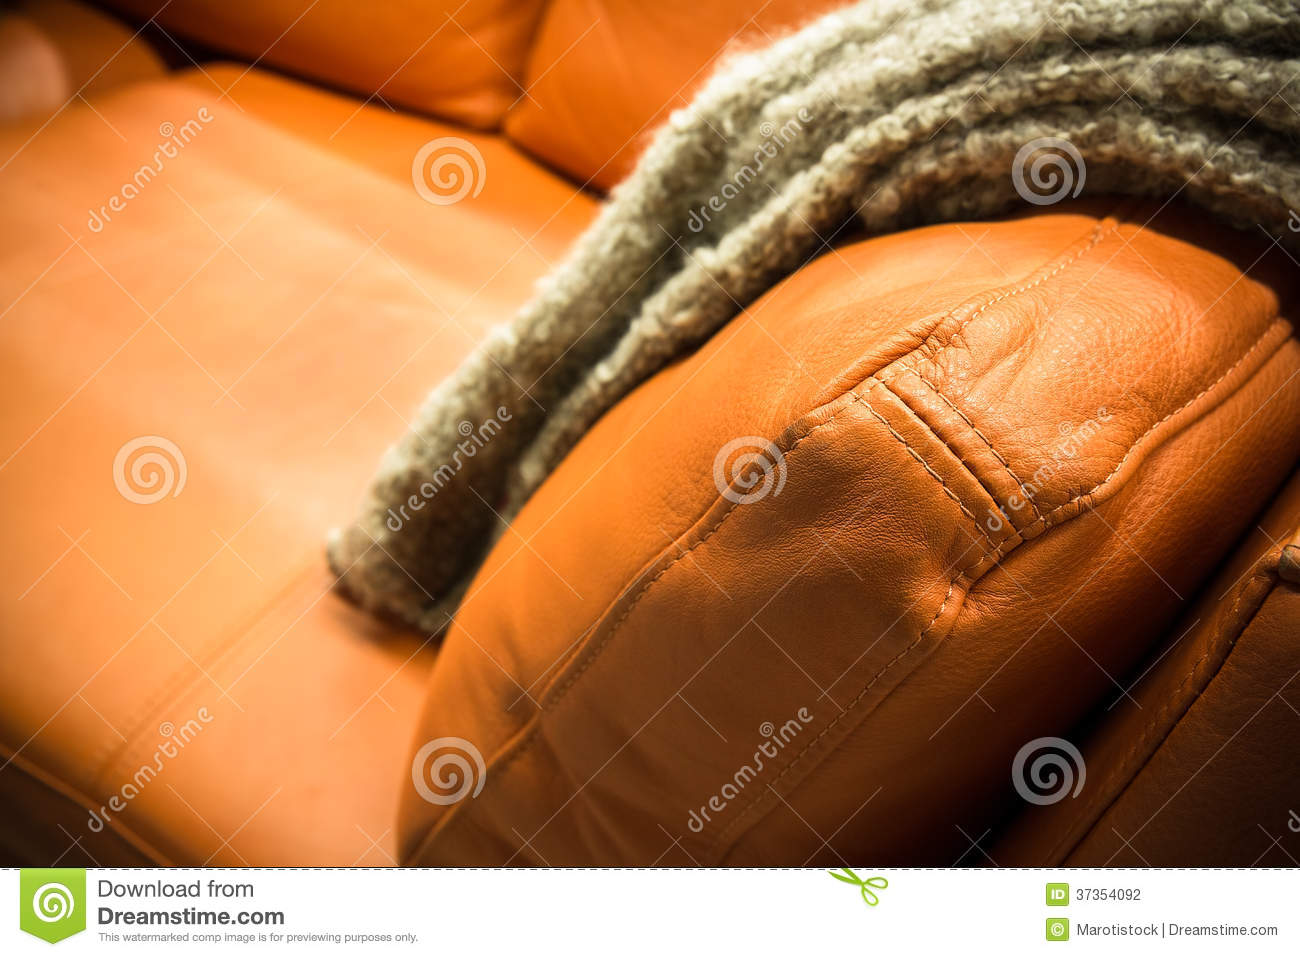 Gray Blanket Draped Over A Leather Couch Stock Photography  : gray blanket draped over leather couch 37354092 from dreamstime.com size 1300 x 957 jpeg 140kB